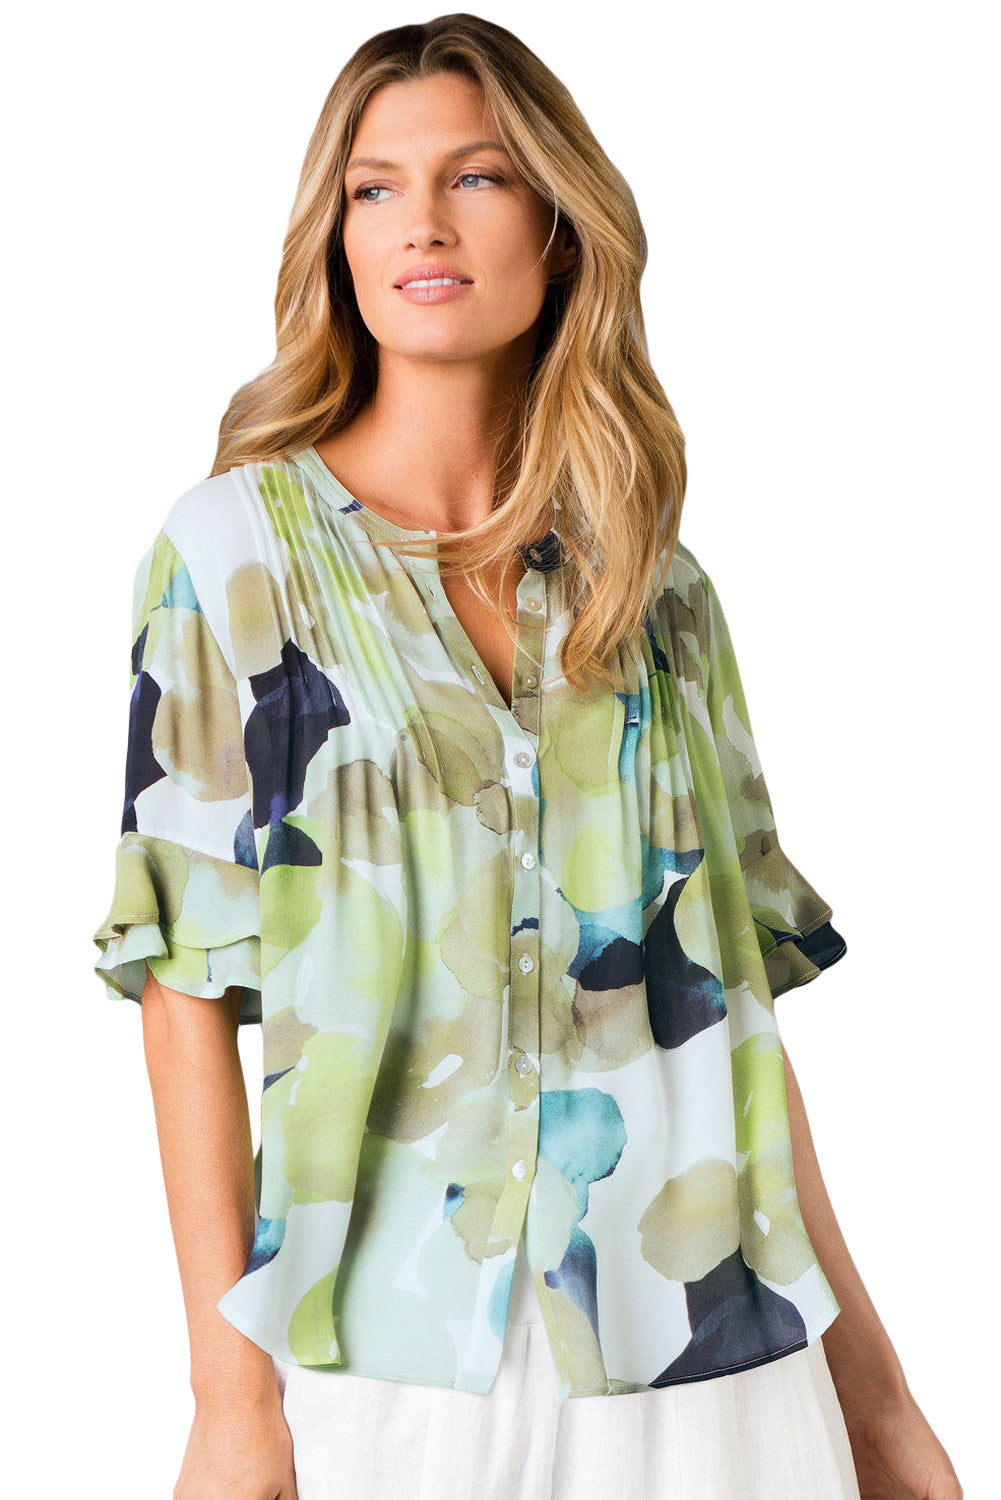 Draped Tie Dye Print Blouse with Flounced Sleeves